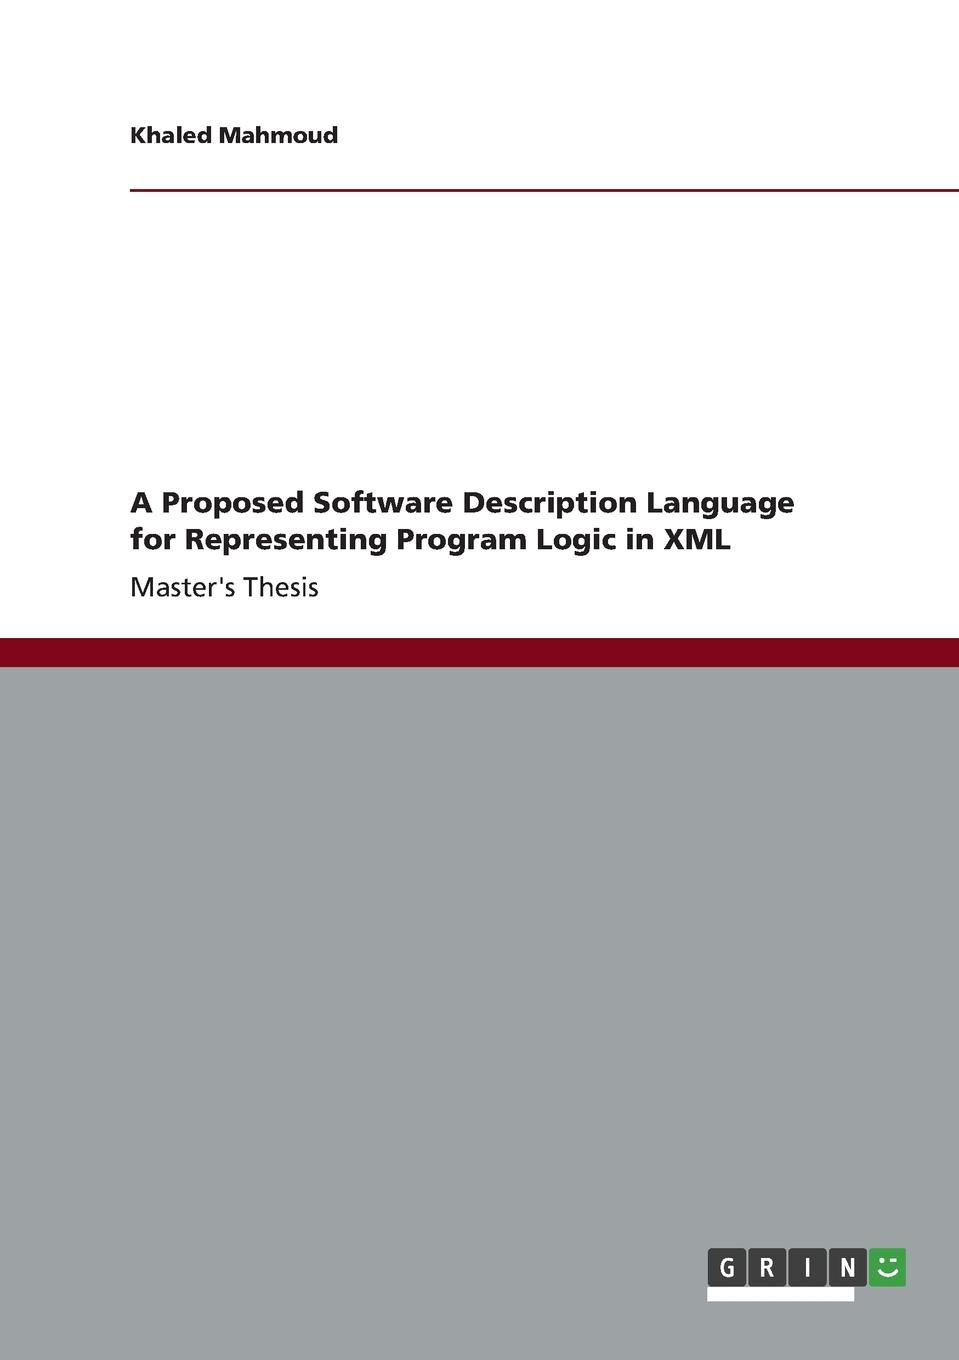 Khaled Mahmoud A Proposed Software Description Language for Representing Program Logic in XML lawrence spencer d reliable javascript how to code safely in the world s most dangerous language